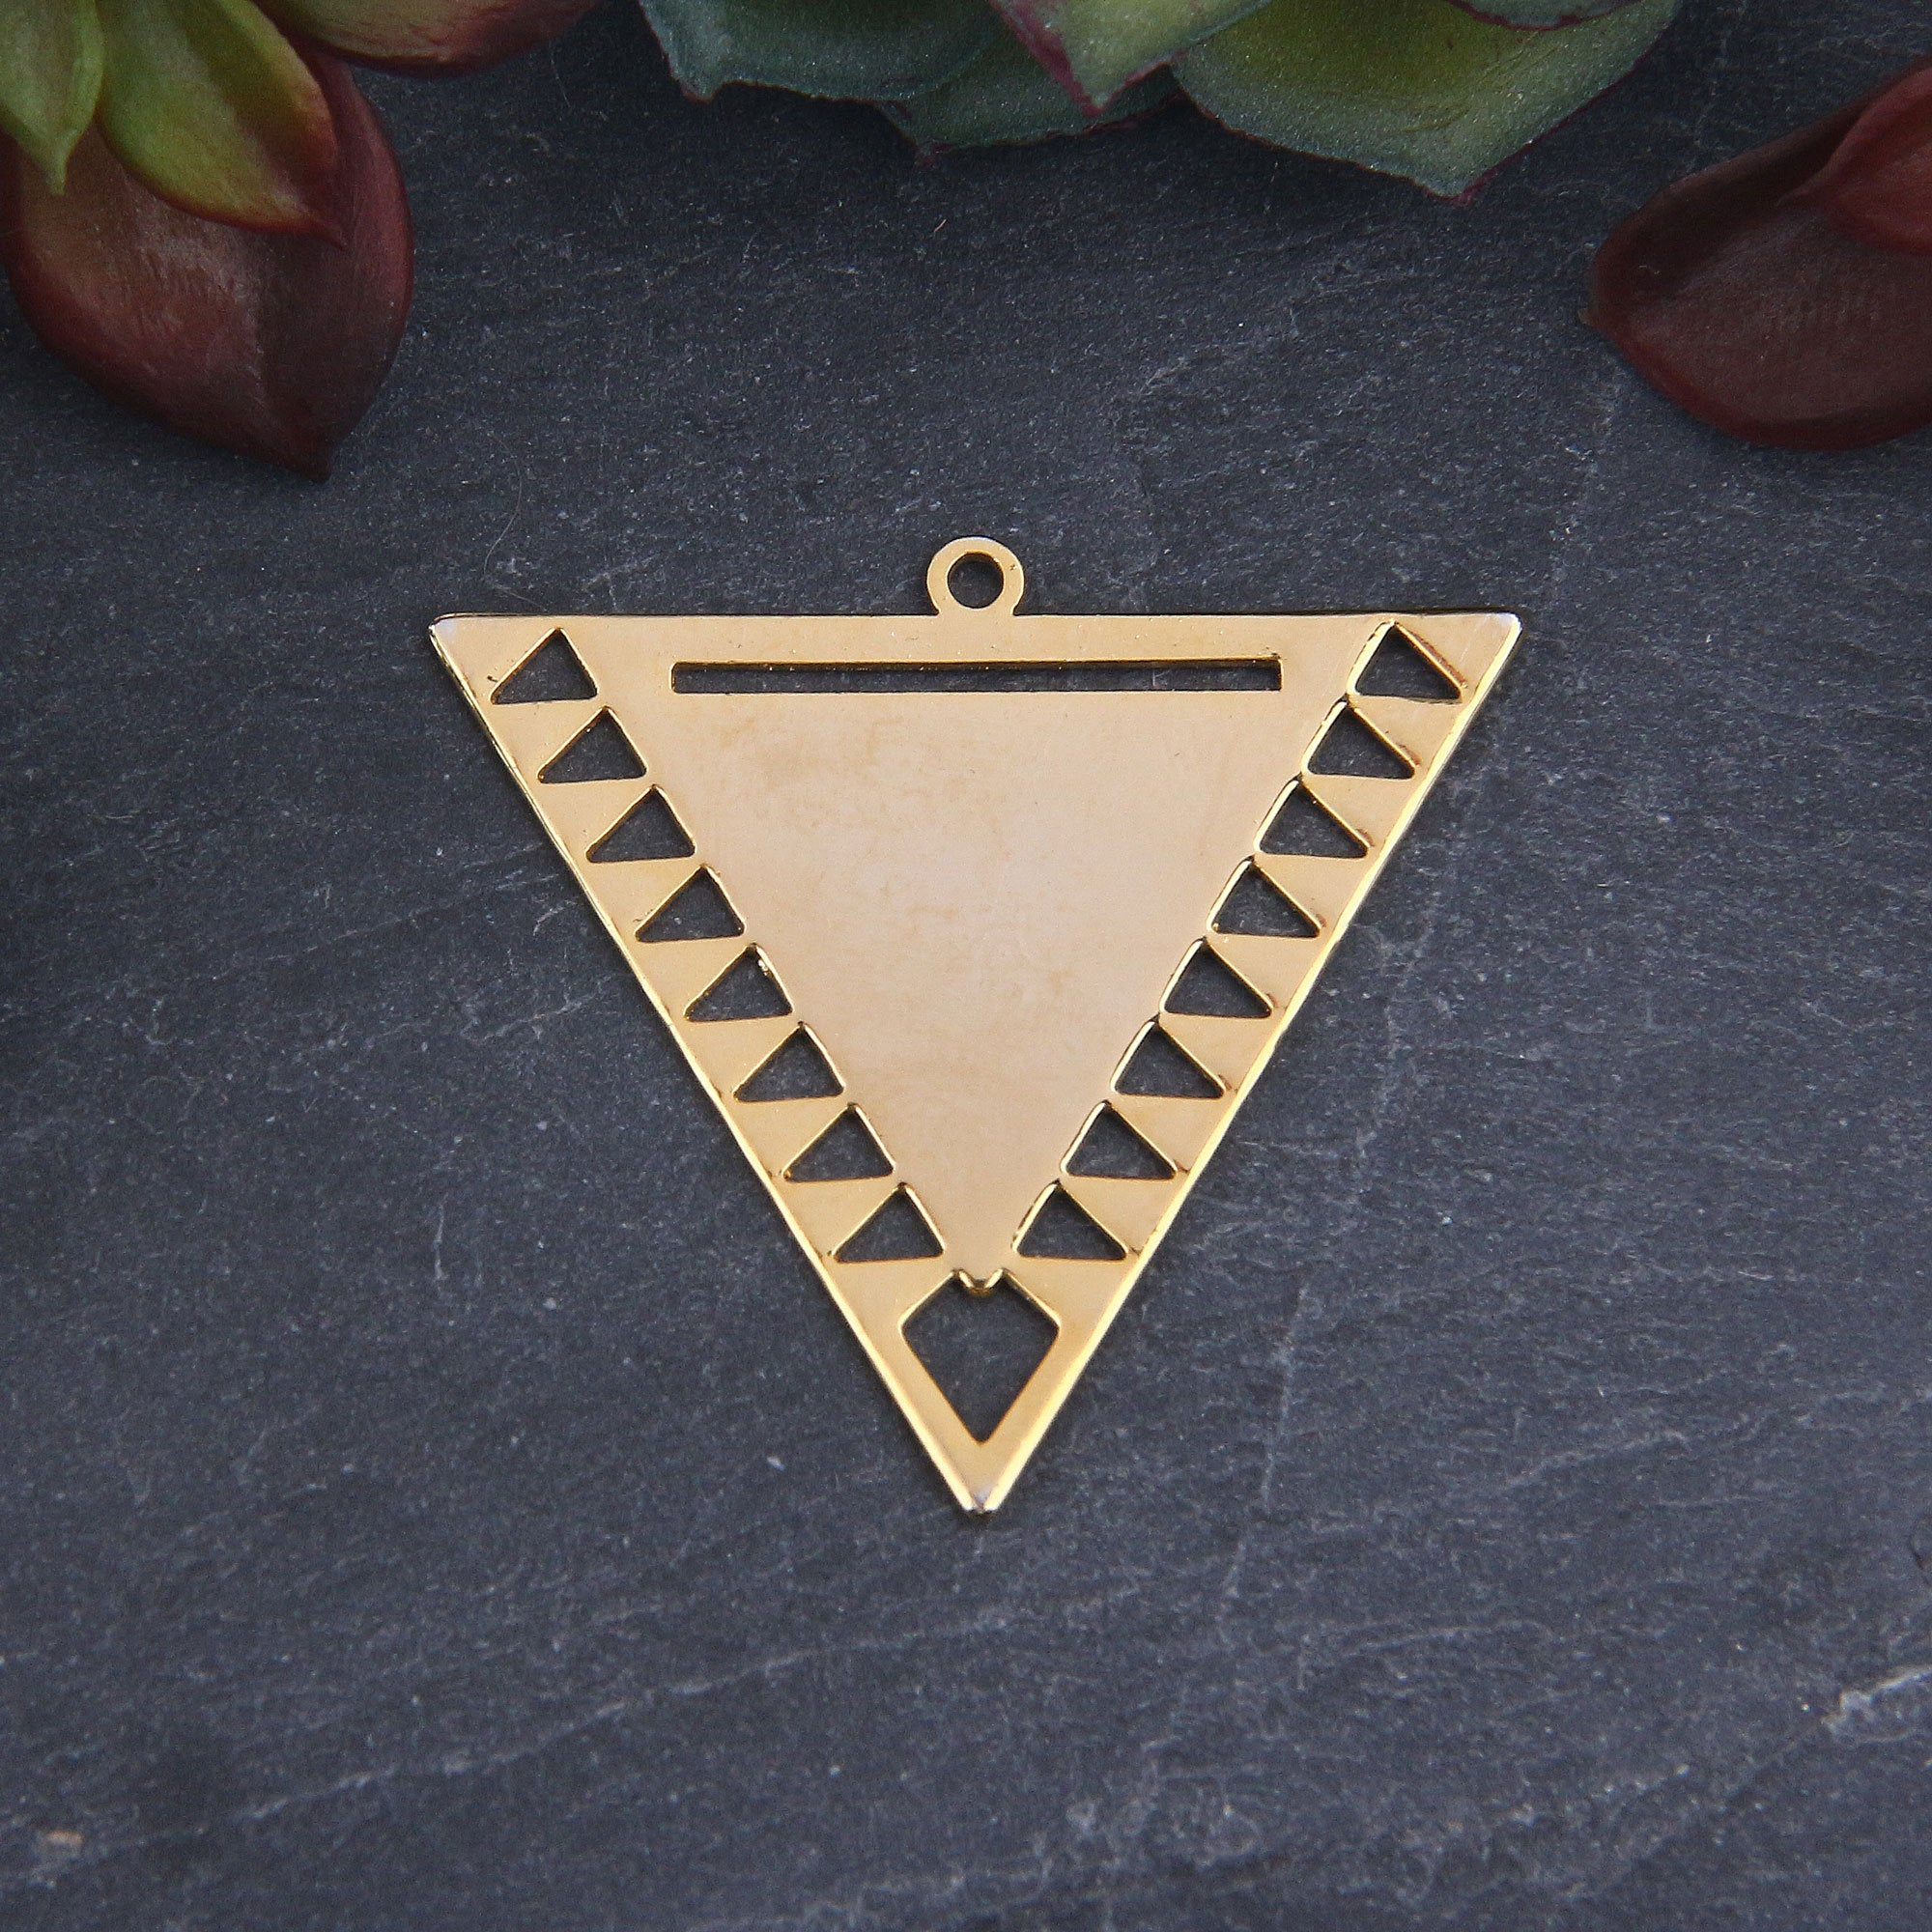 Triangle Gold Pendant For Miyuki Beading, Miyuki Bead Pendant, 1 piece // GP-670